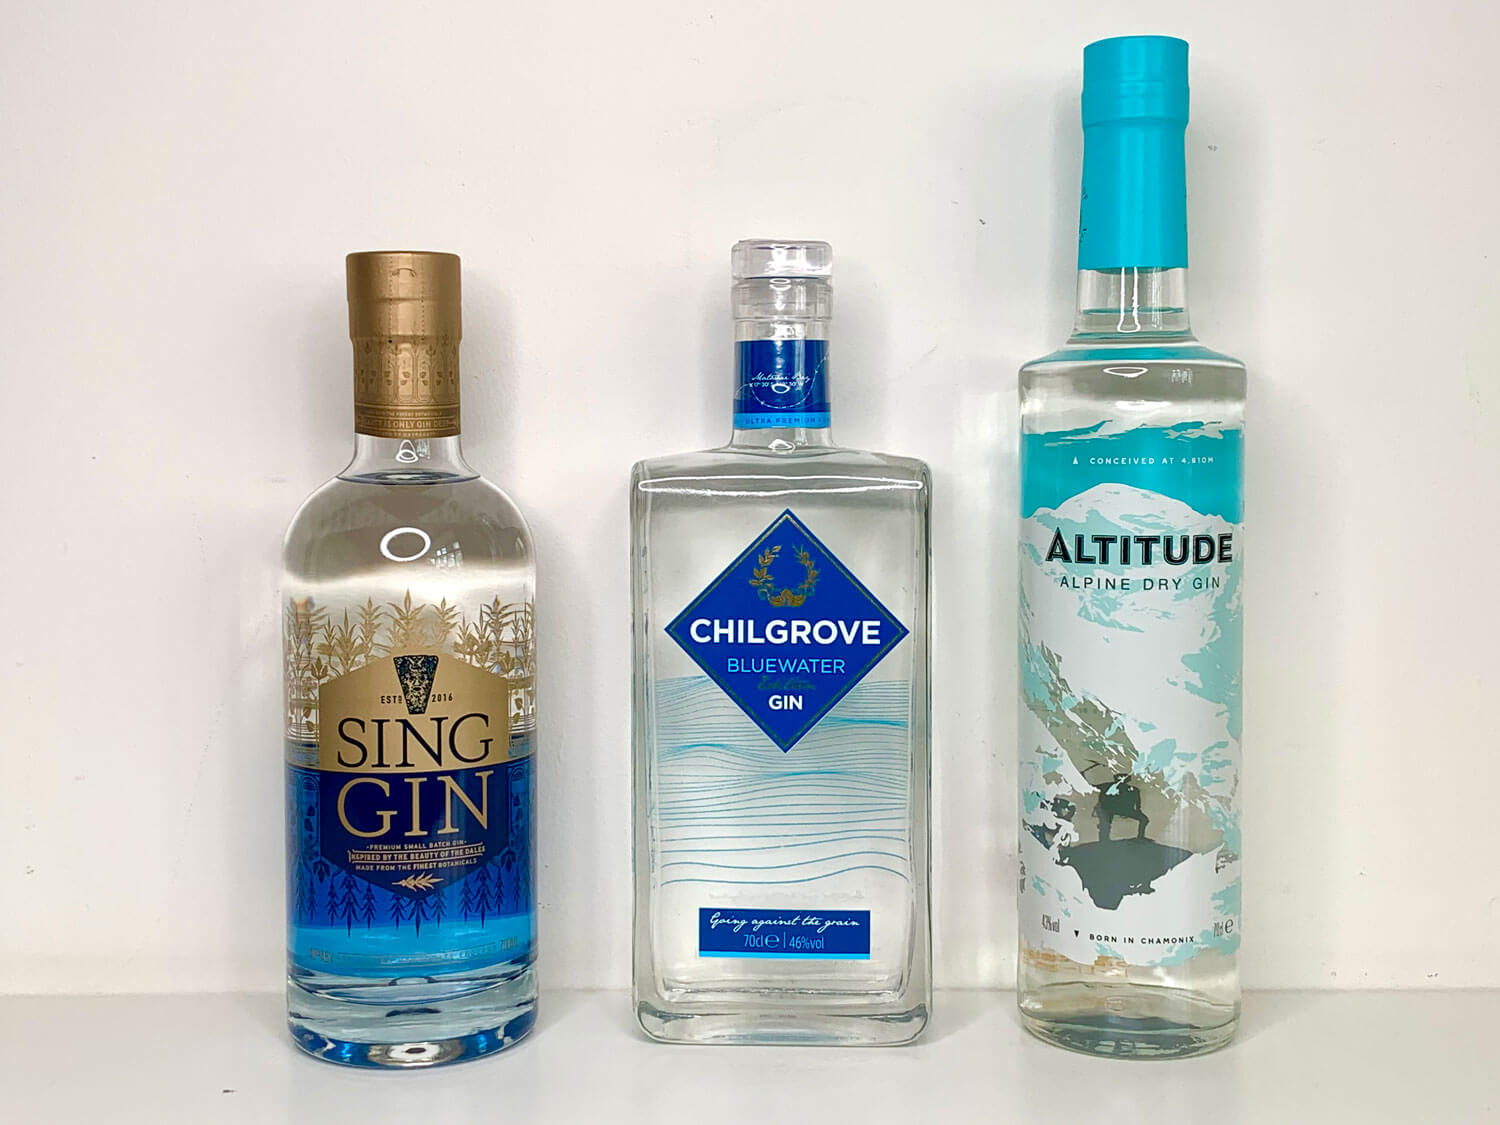 Trio of Gins